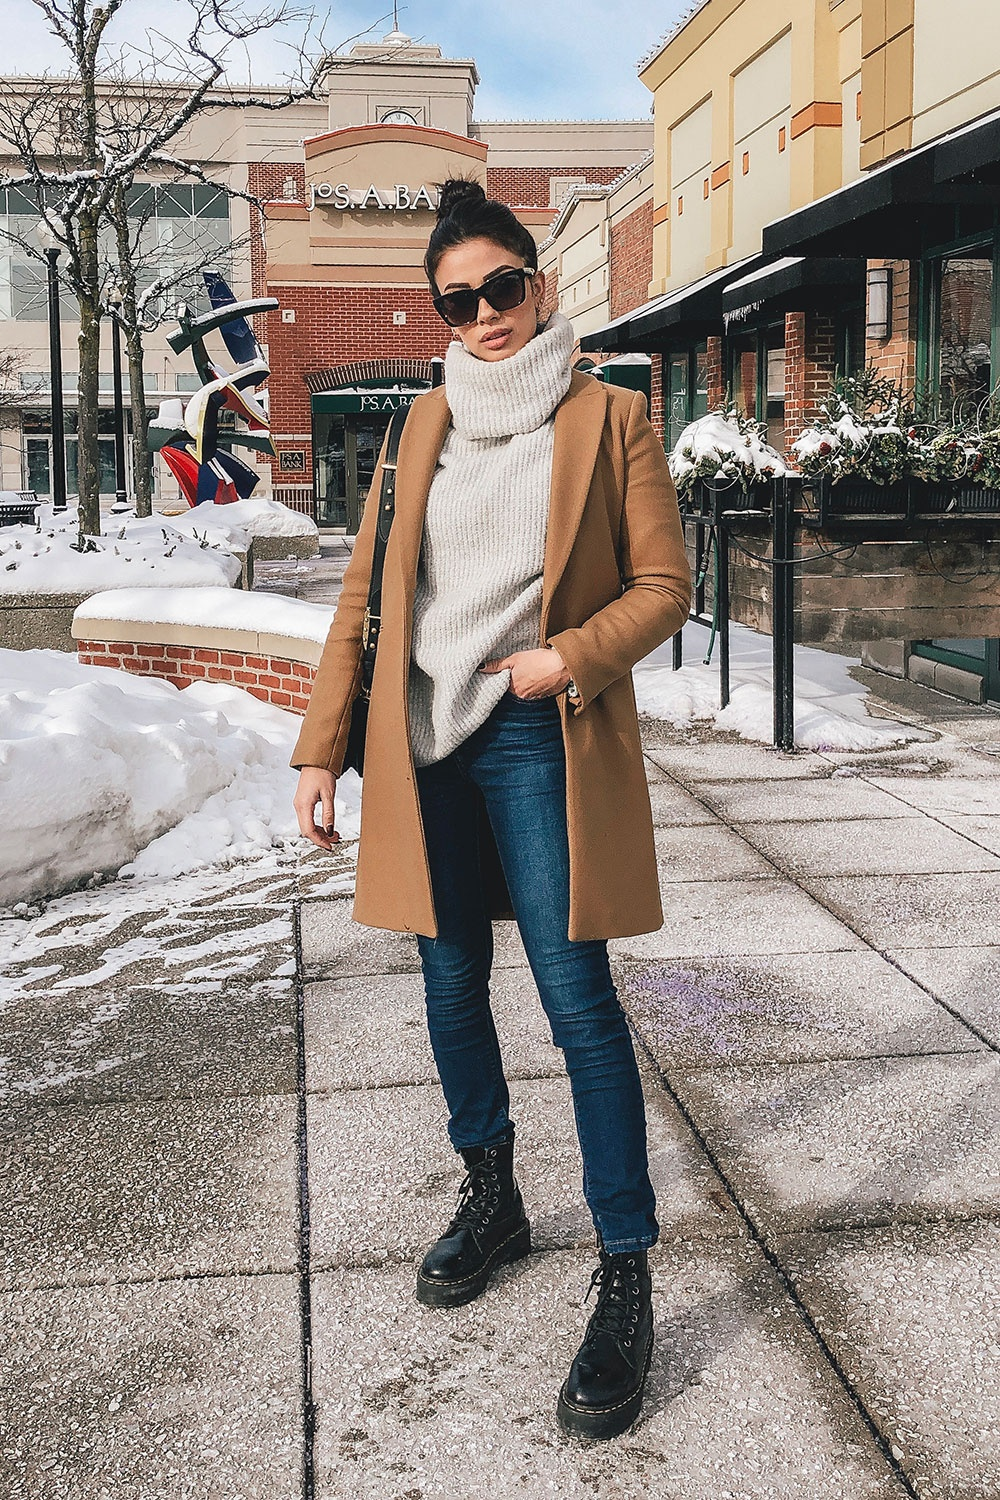 How many layers should you wear on cold winter days? Quora